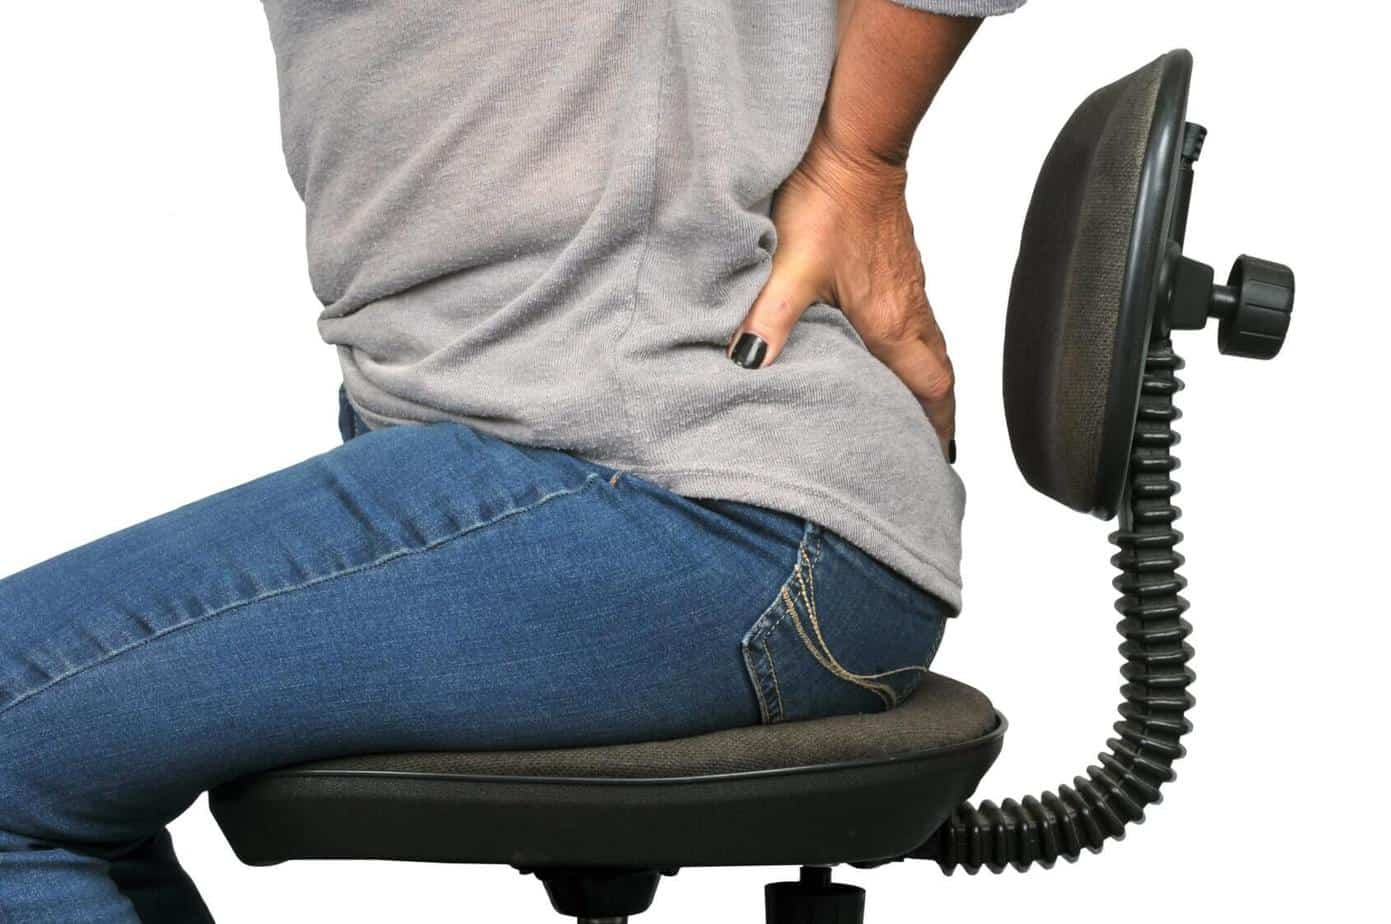 How To Sit More Comfortably With Sciatica